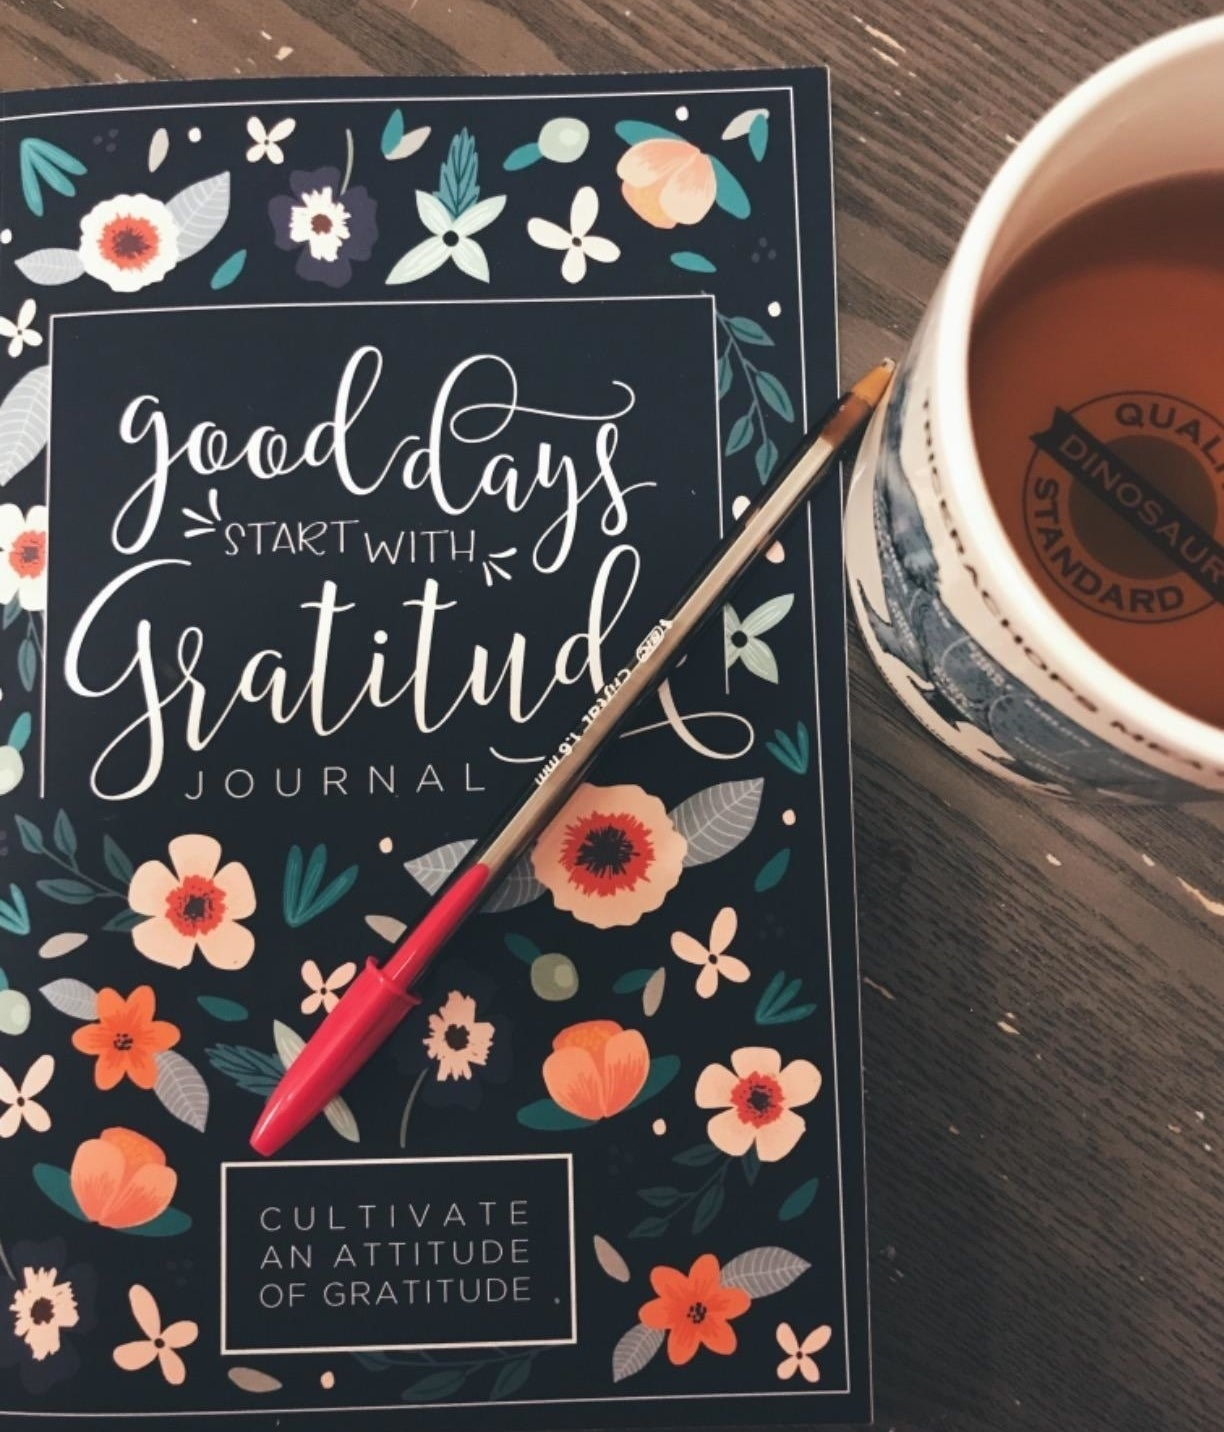 reviewer photo showing gratitude journal with pen next to a cup of tea